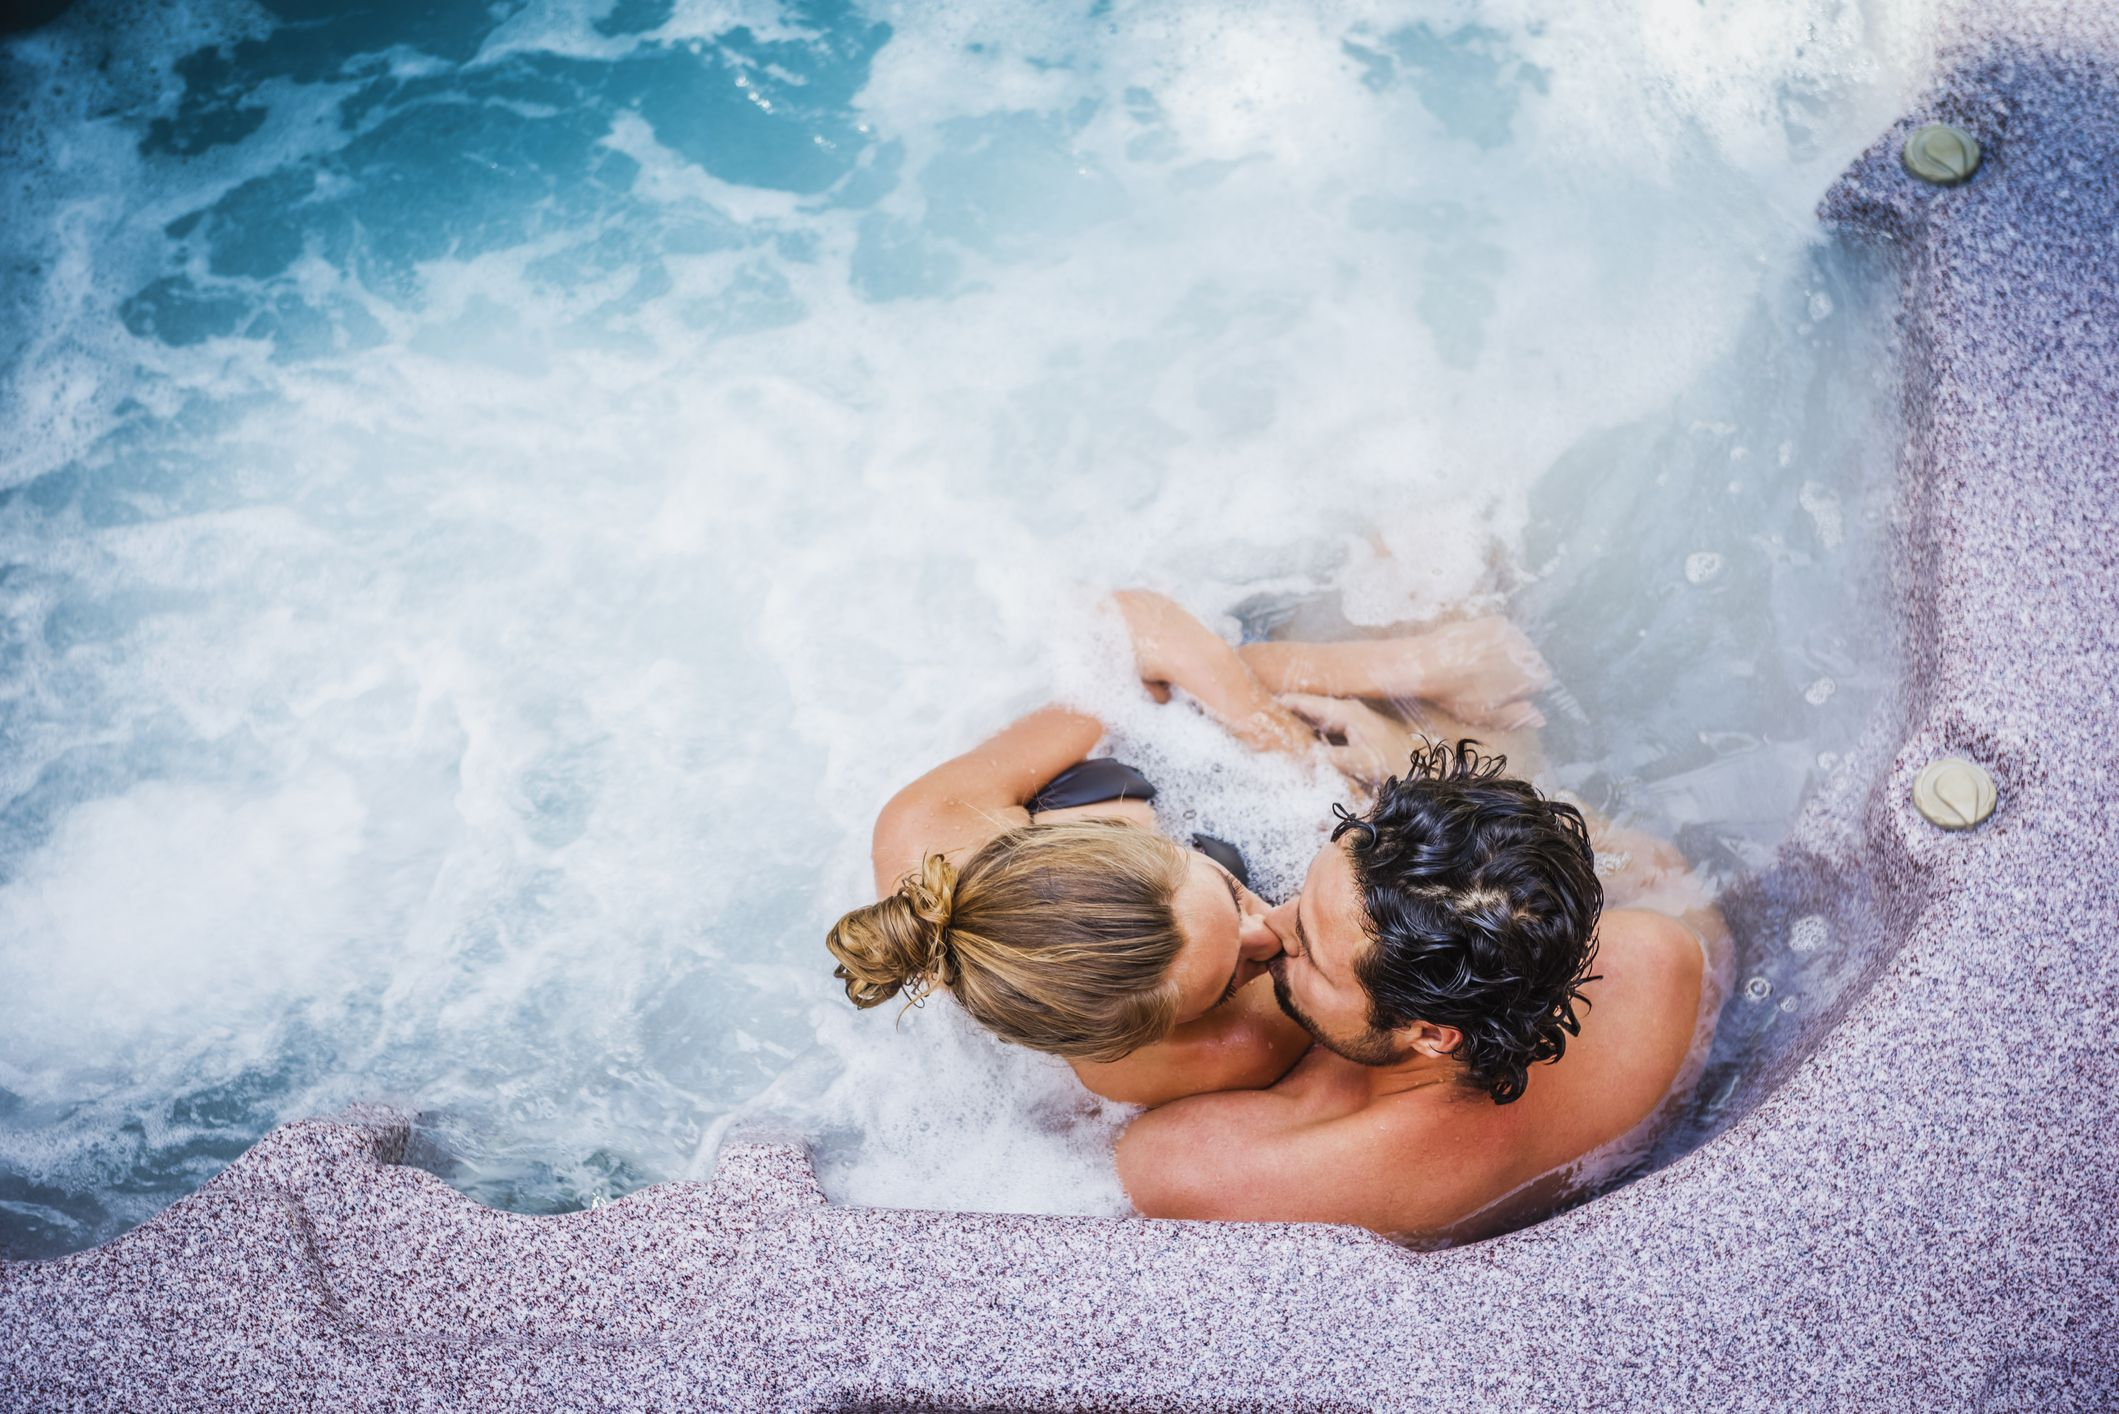 8 Hot Tub Sex Positions That Won't Give Her a UTI